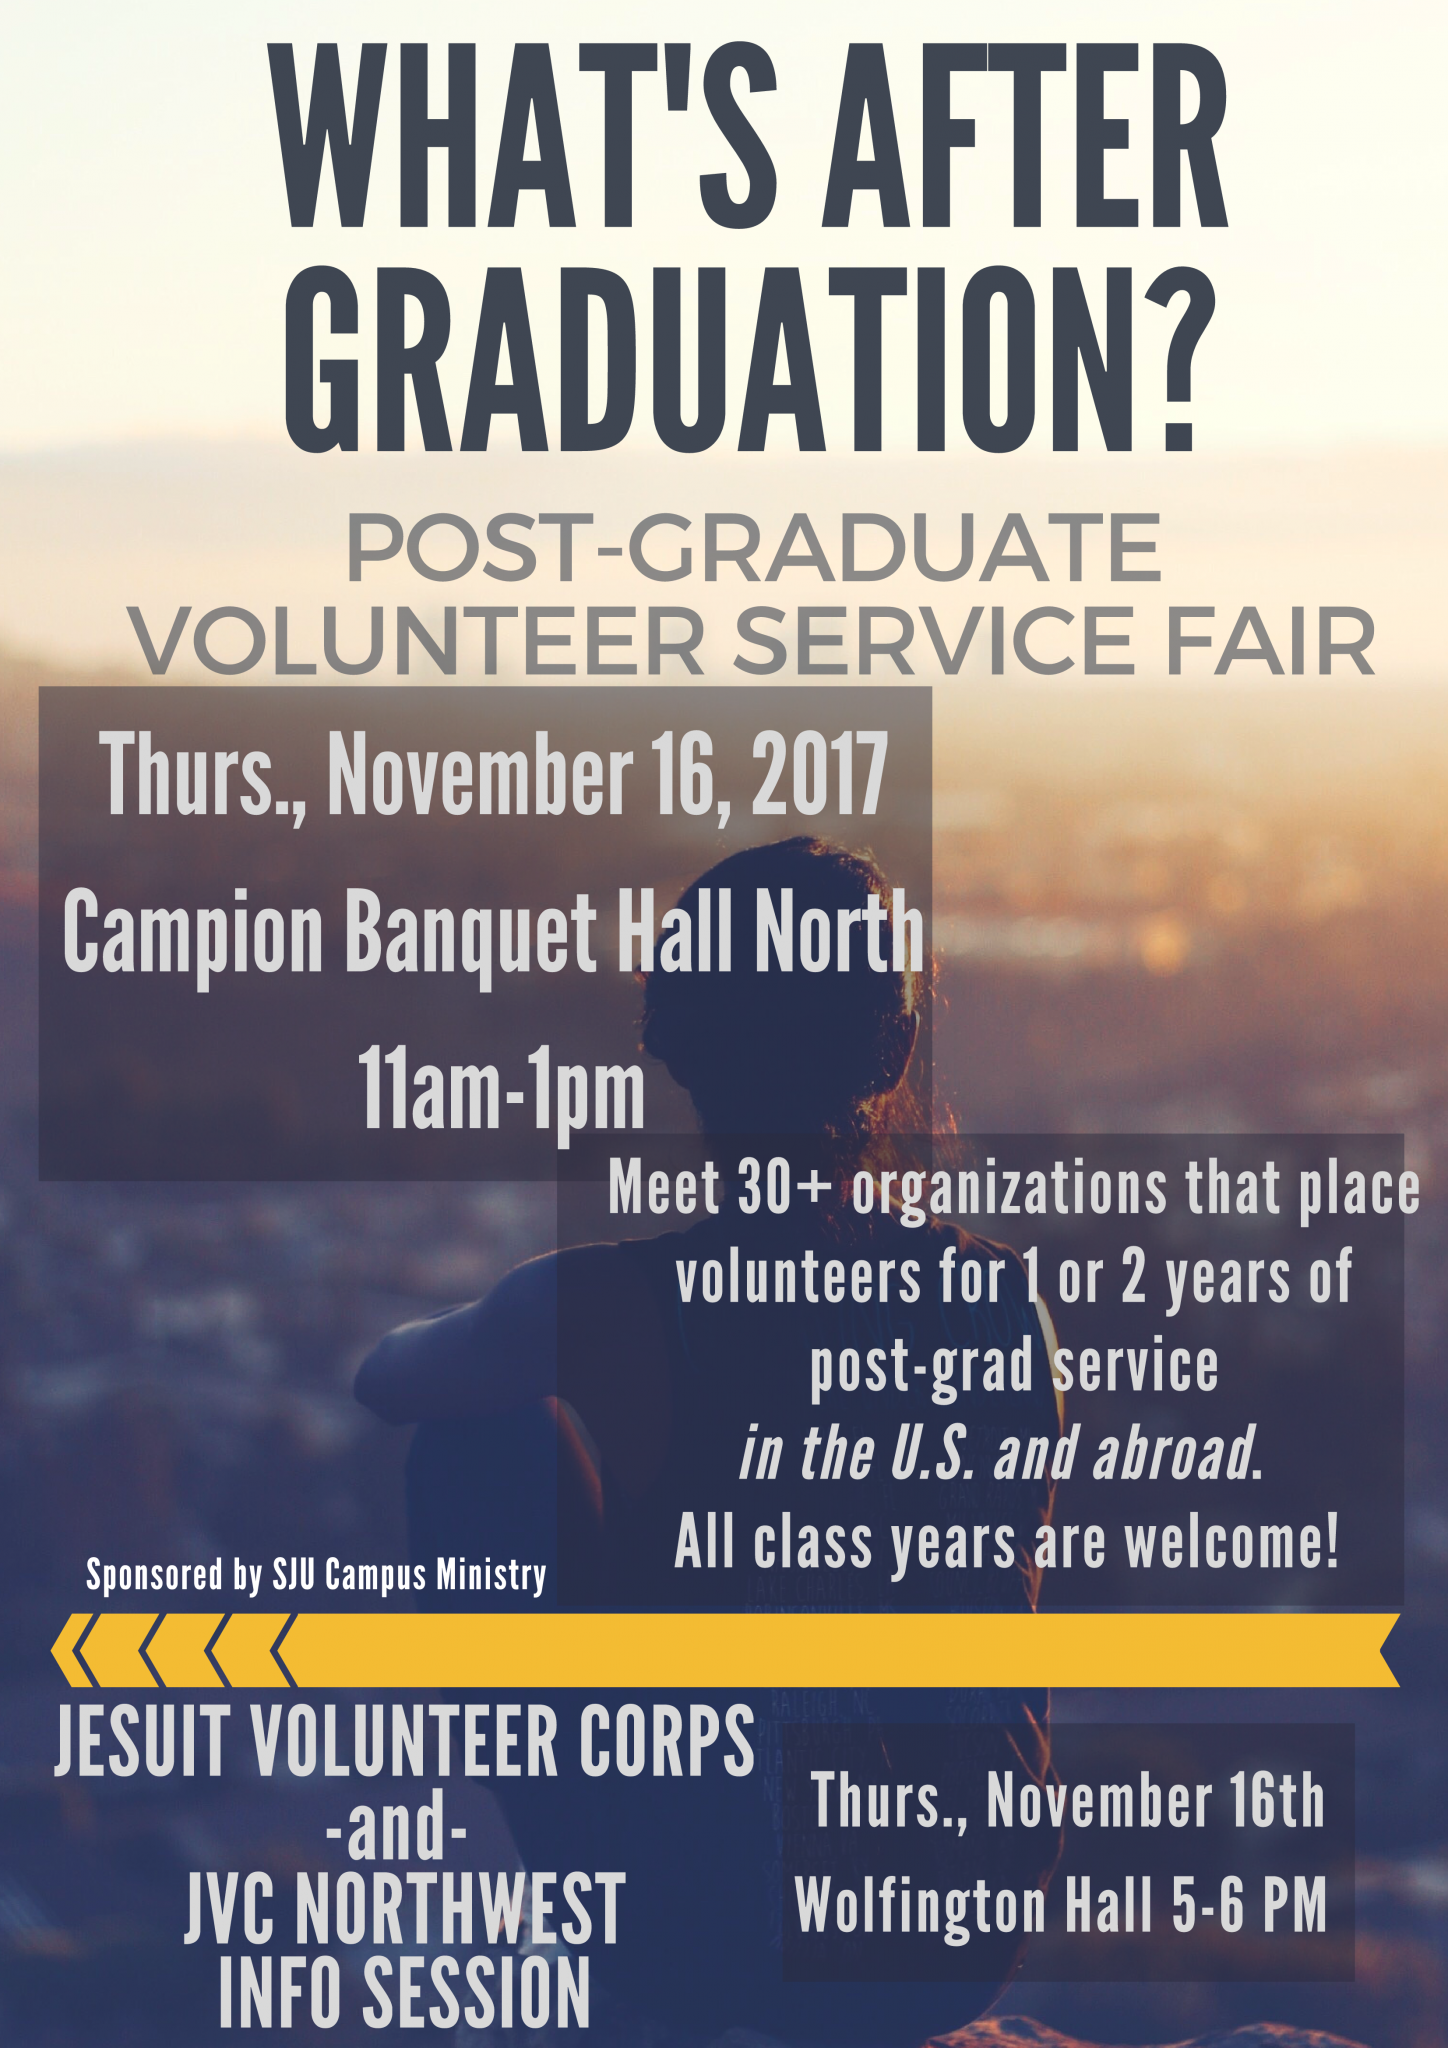 Info about post grad volunteer service fair and JVC Info Session